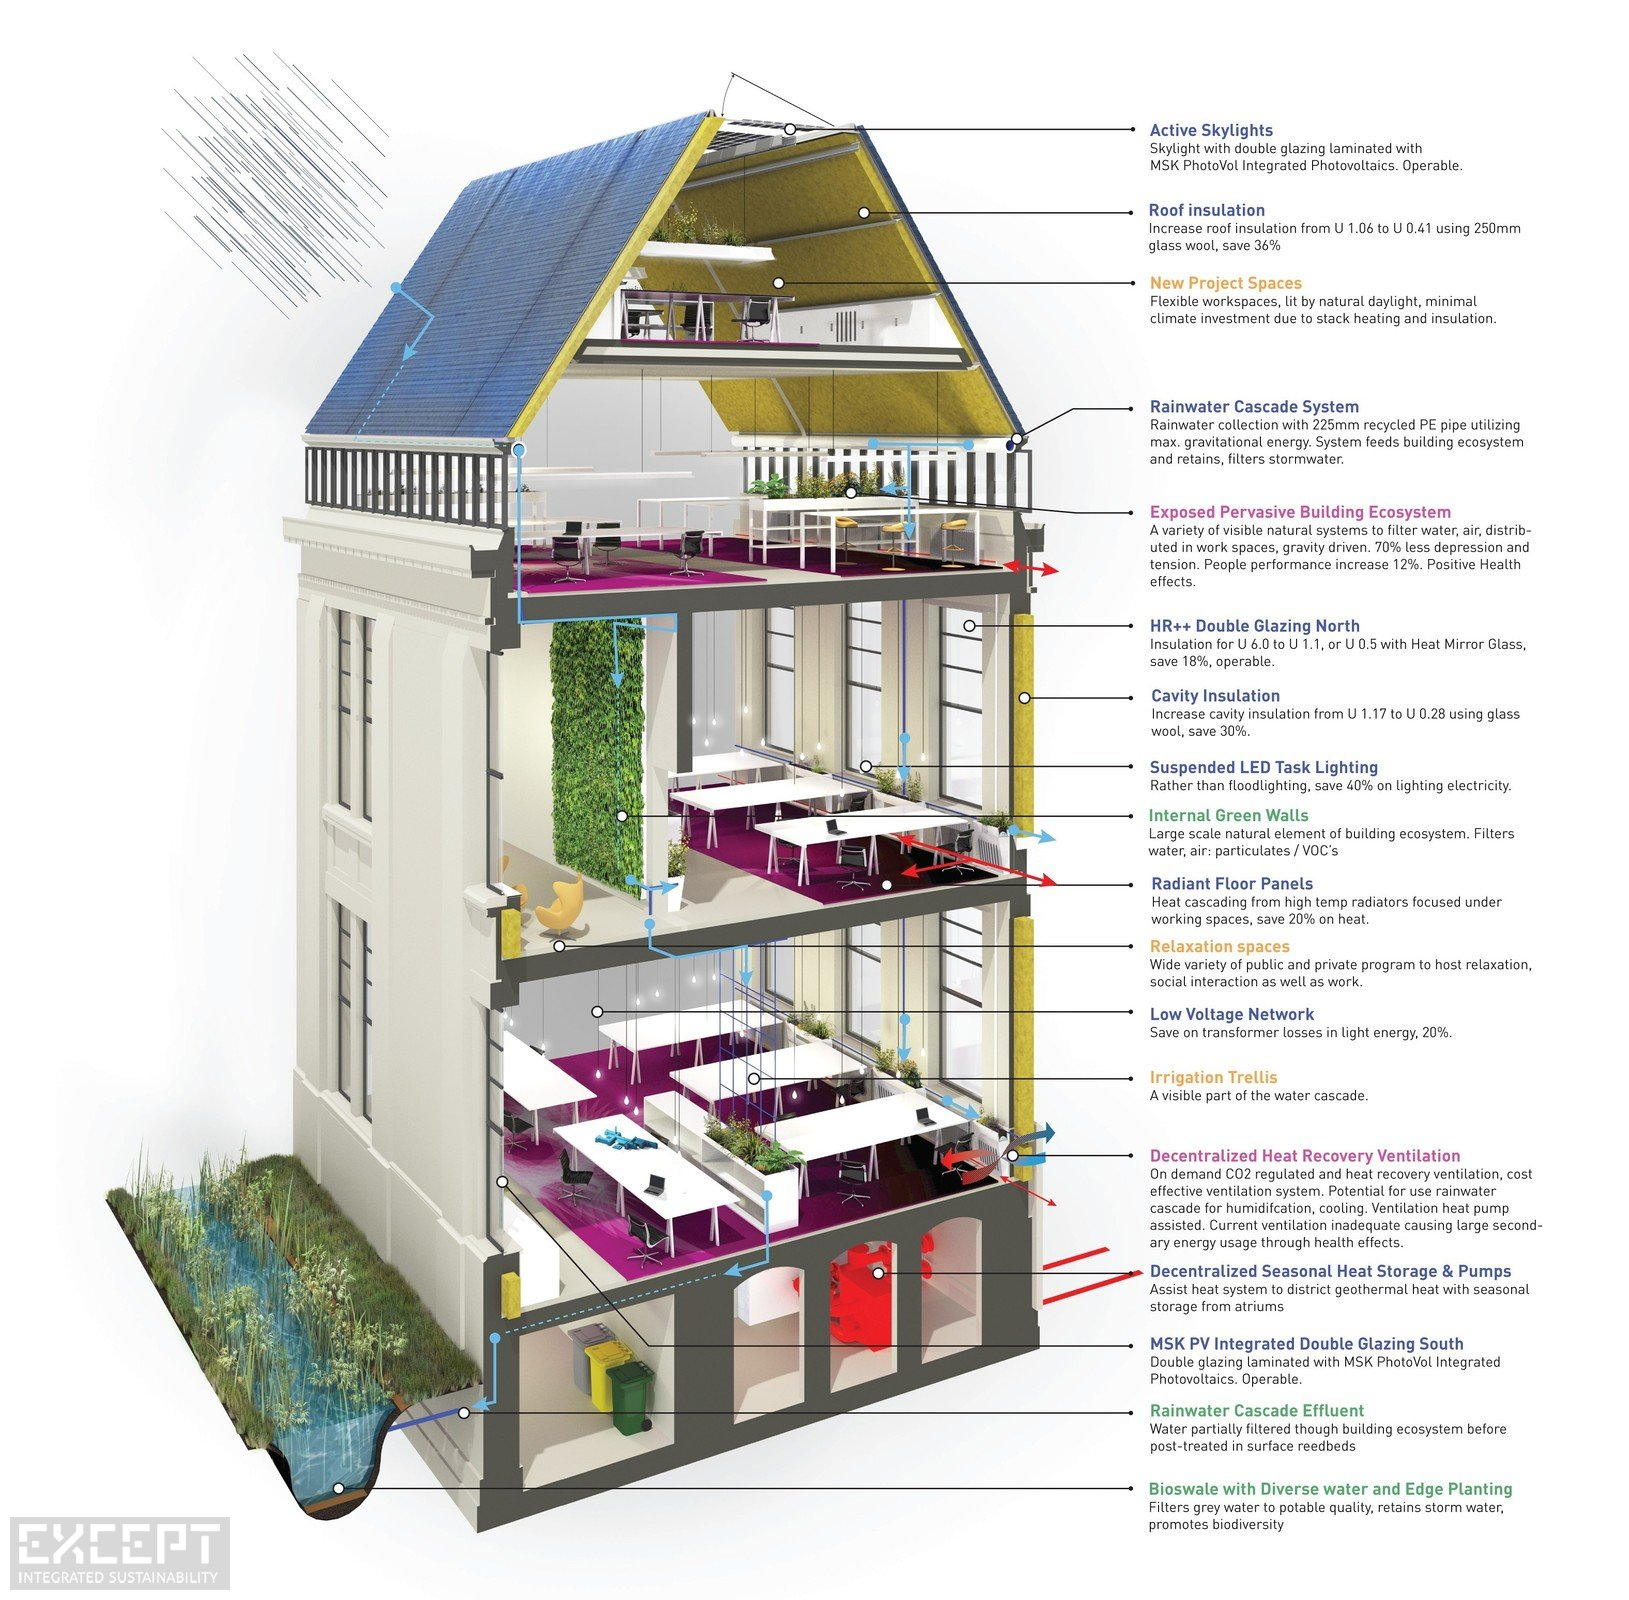 Section Diagram - Section of the building showing various ecosystem services.